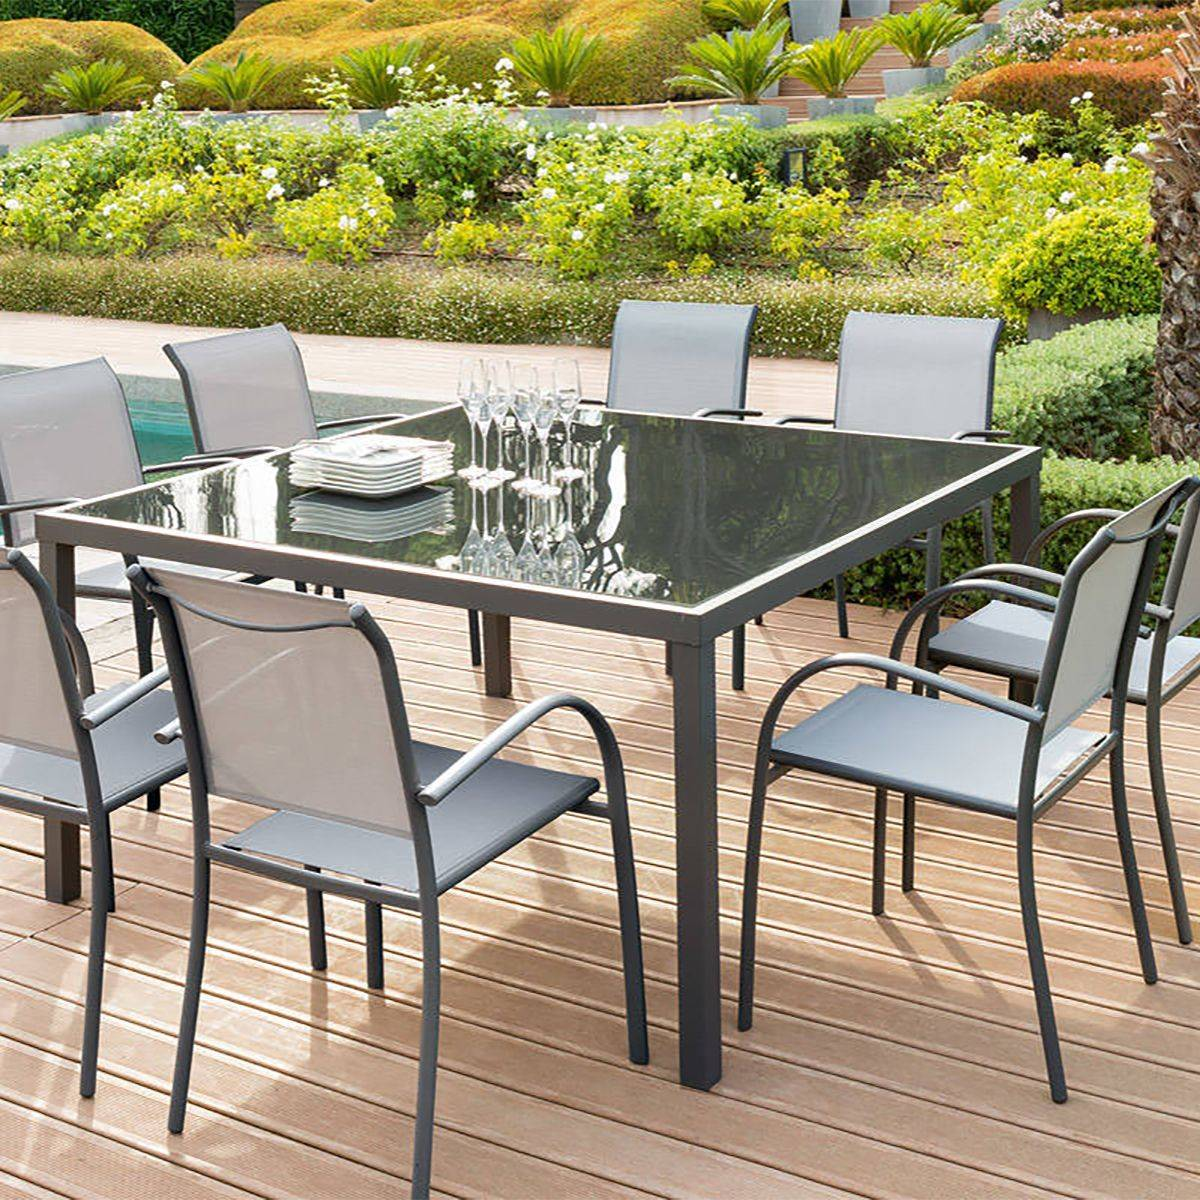 Emejing table de jardin ronde suisse pictures awesome for Table ronde 6 personnes